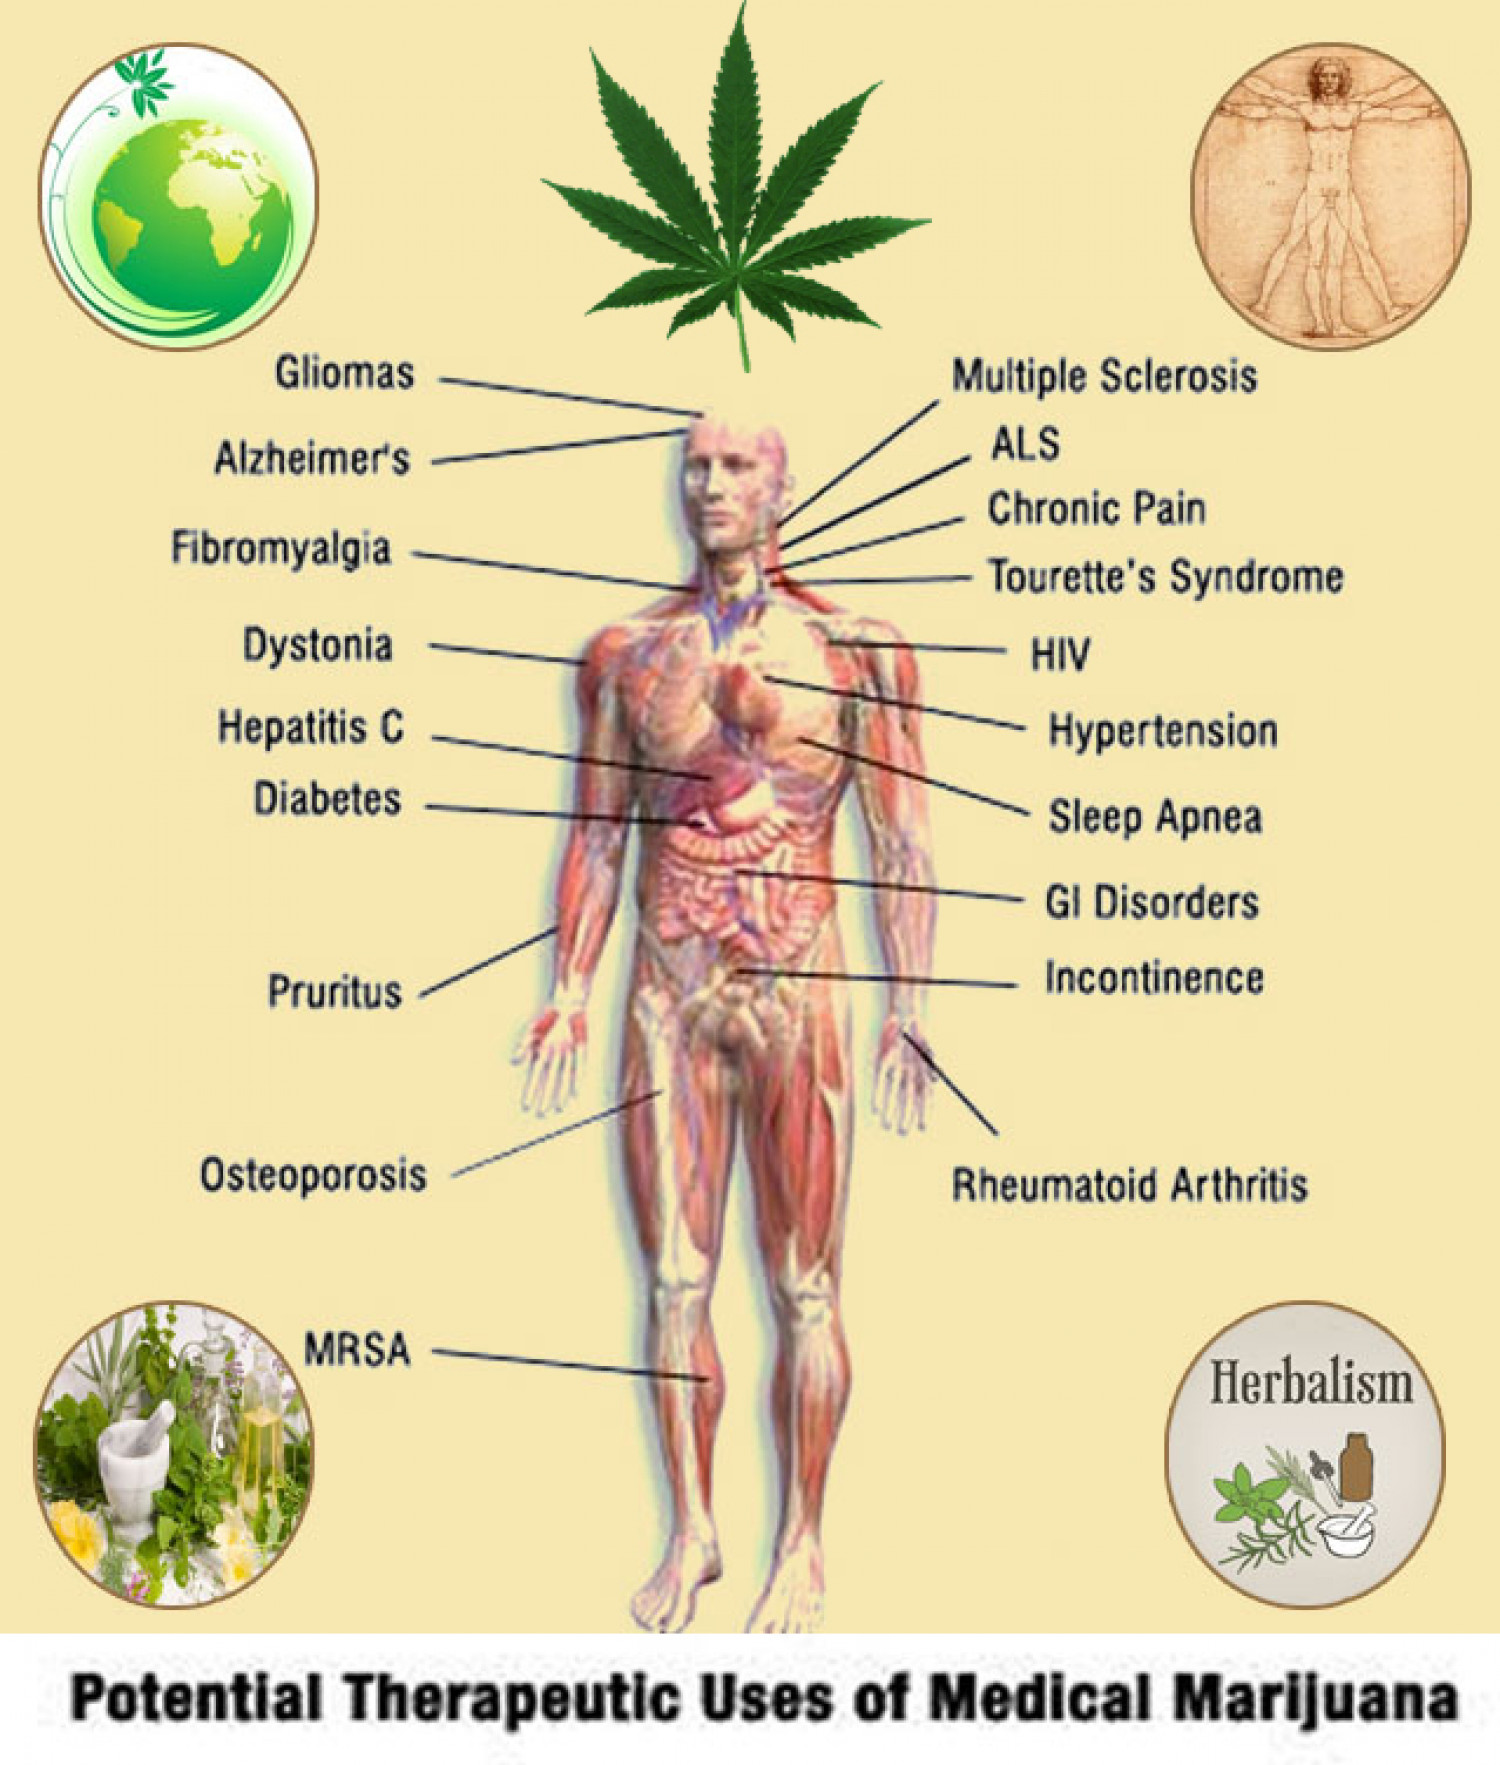 a research on the medicinal benefits of marijuana Medical research on marijuana how does marijuana affect the brain what are some of the risks could ingredients in marijuana treat disease  more marijuana news june 10, 2018 summaries headlines  2018 — with states rapidly legalizing cannabis for medicinal and recreational use, physicians will be increasingly pressed to counsel.